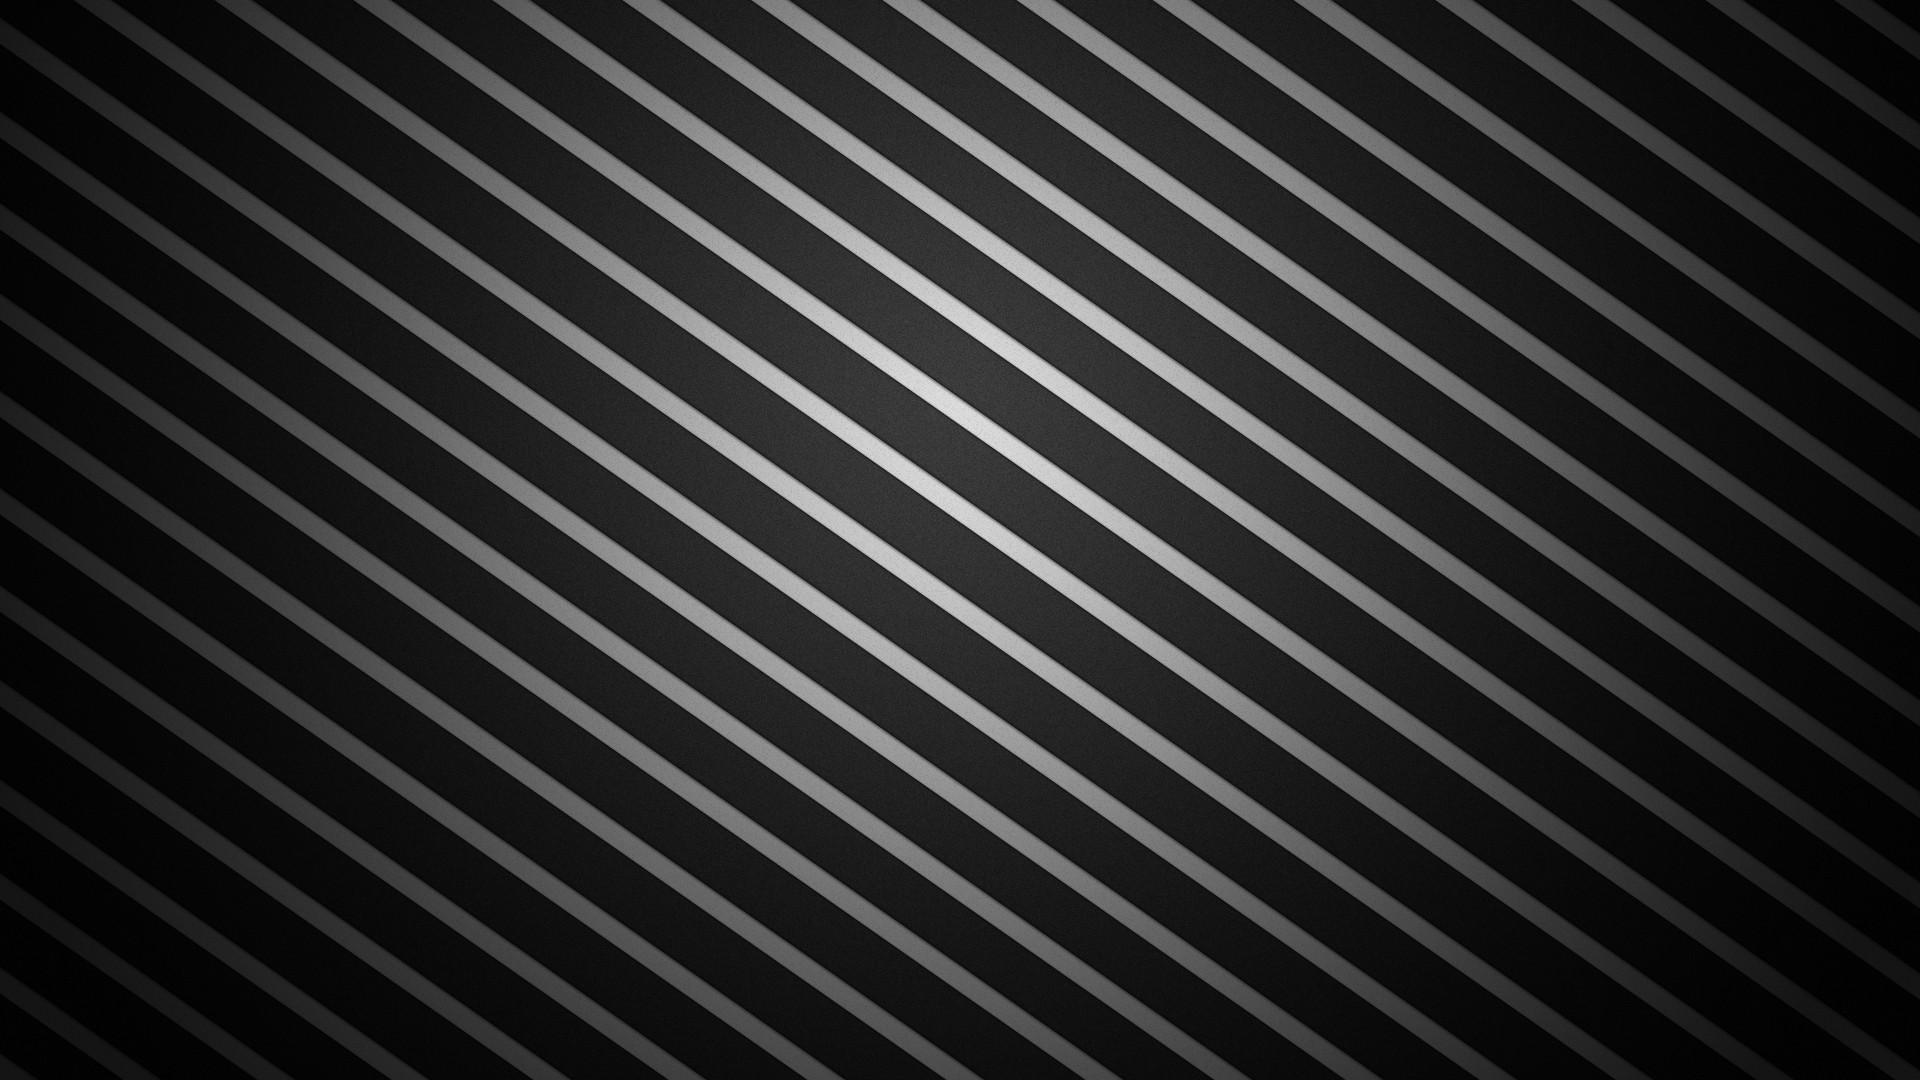 Striped Black Wallpaper